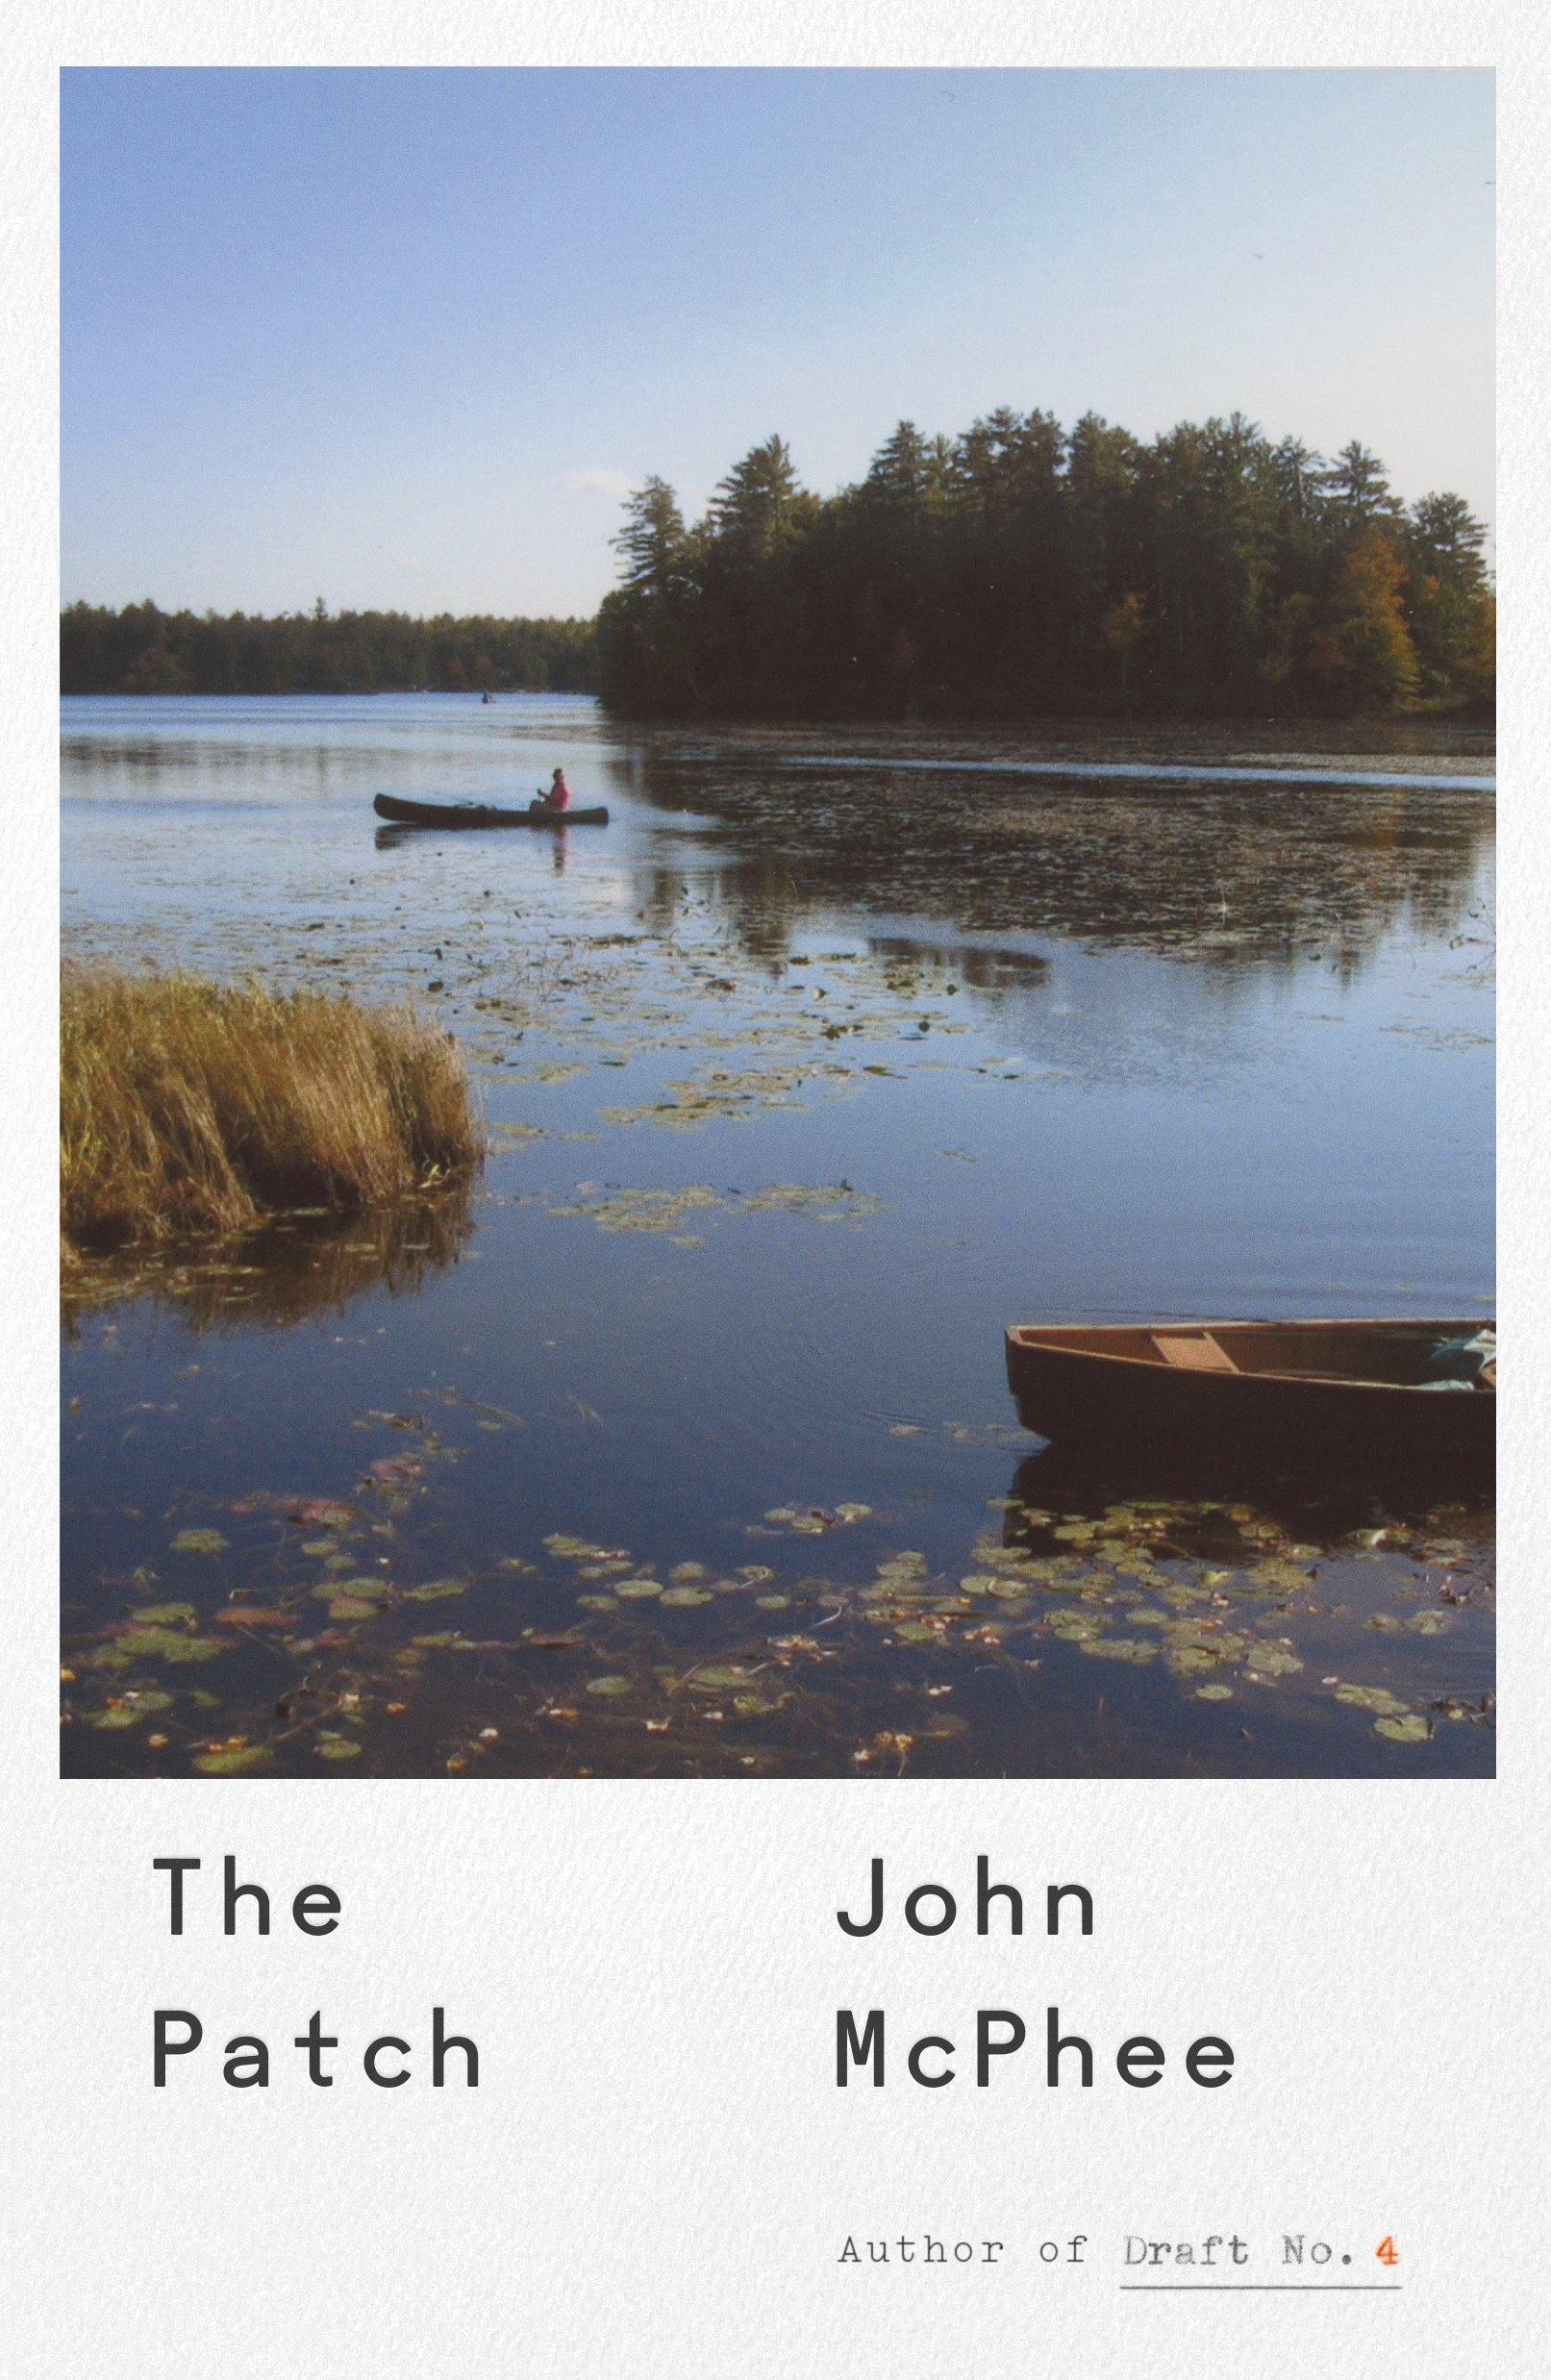 Reflections in a Quilt: John McPhee's The Patch - Slant Magazine